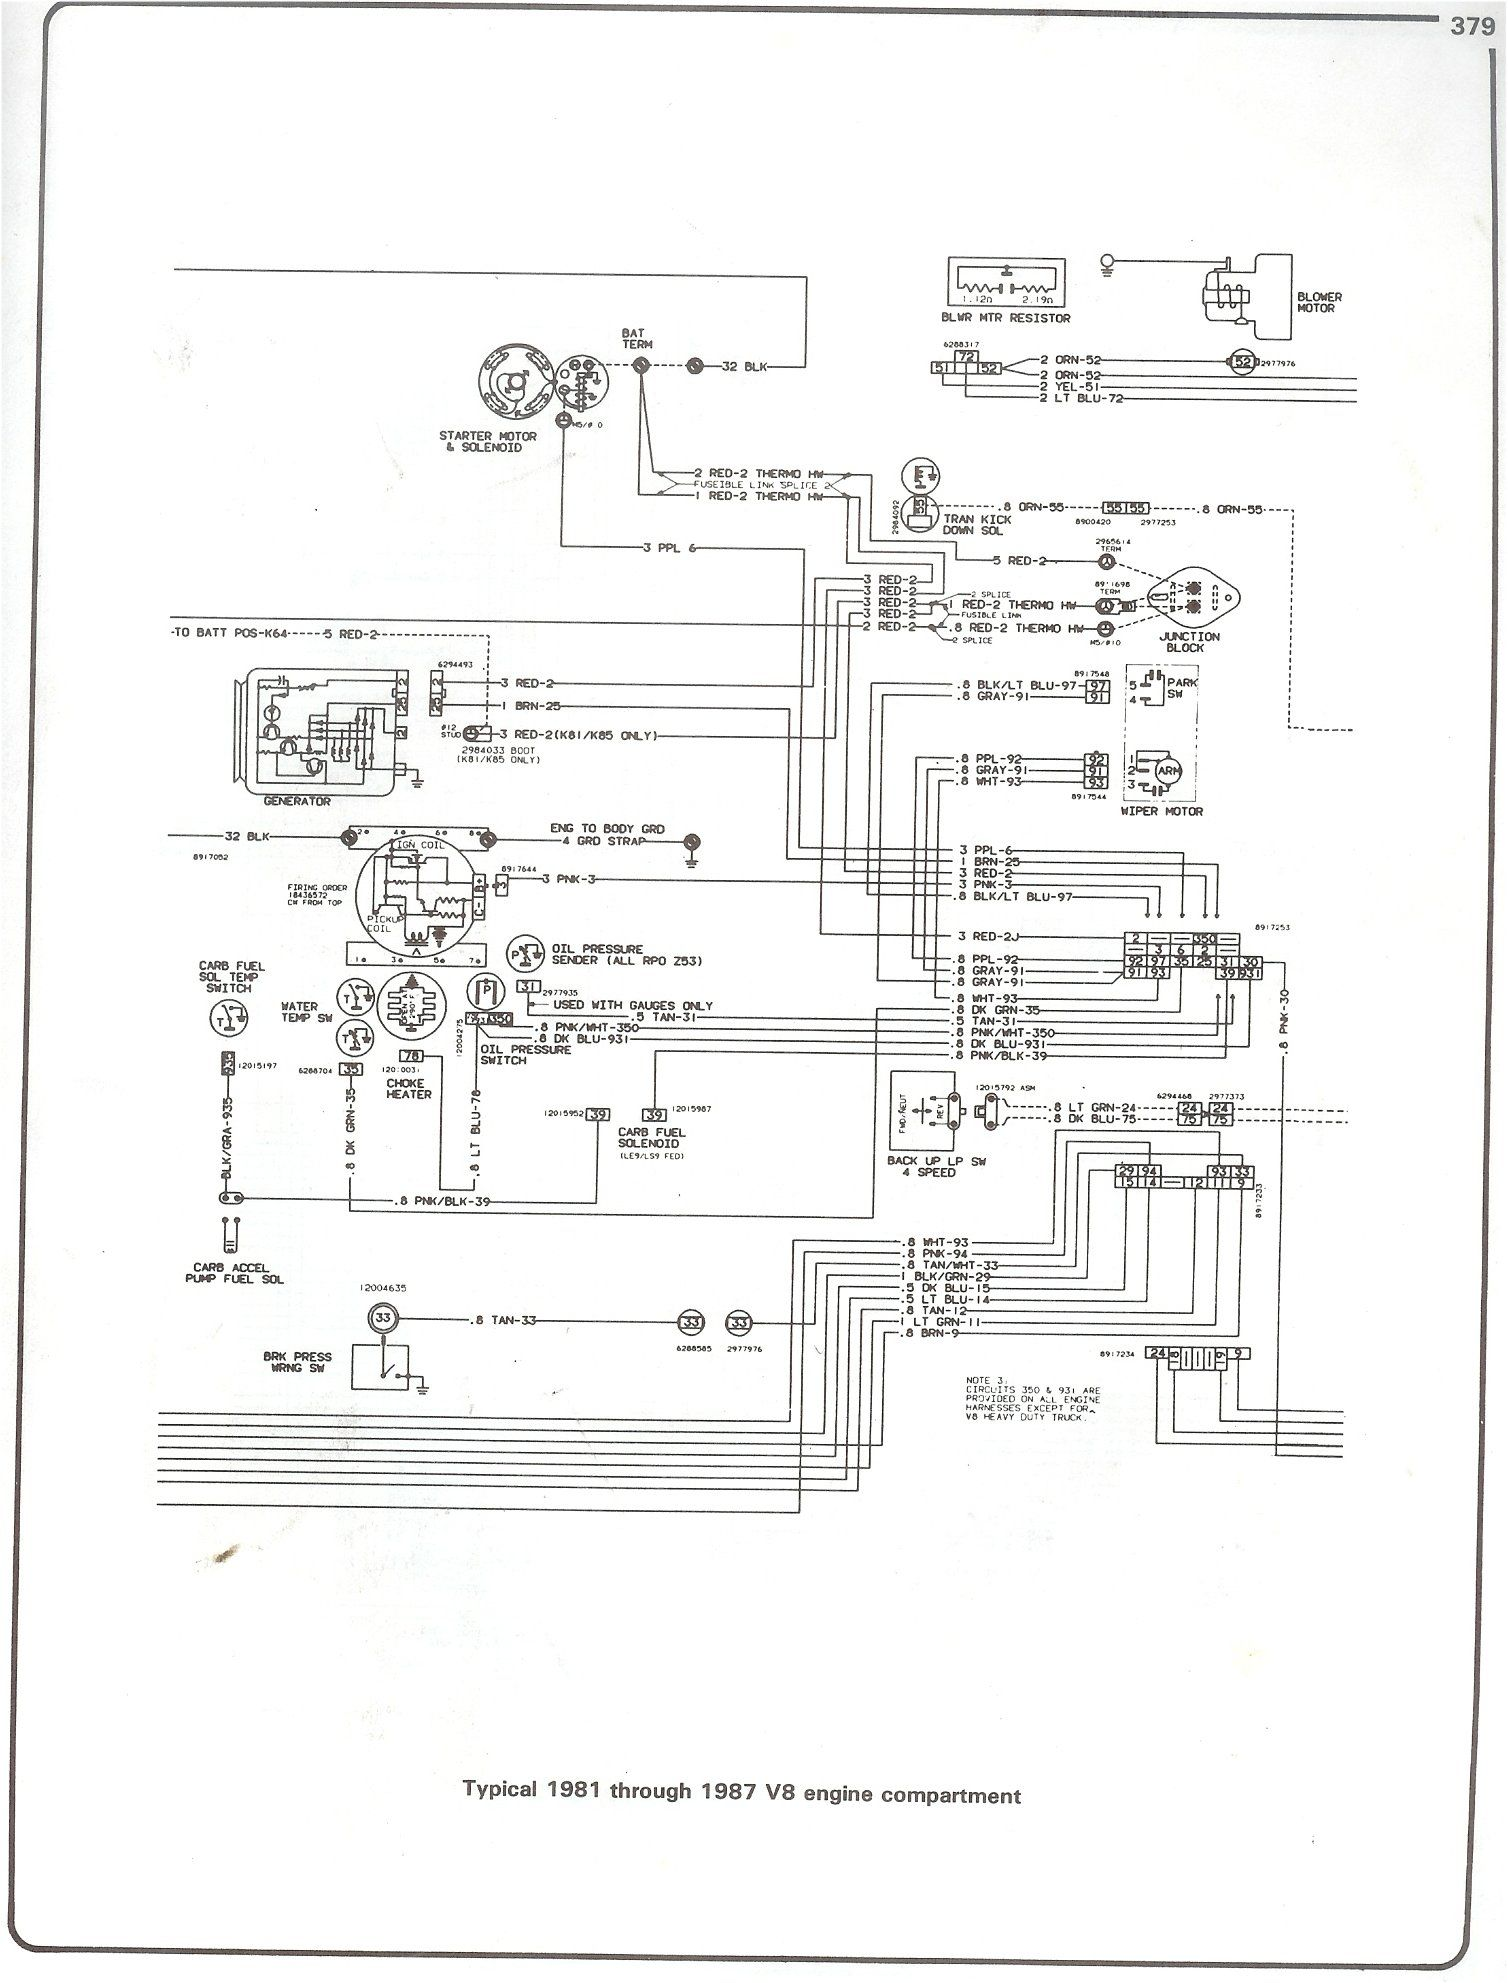 Pin By Malcolm Cail On Projects To Try Pinterest Trucks Gm Fuse Box Problems 85 Chevy Truck Wiring Diagram Http 73 87chevytrucks